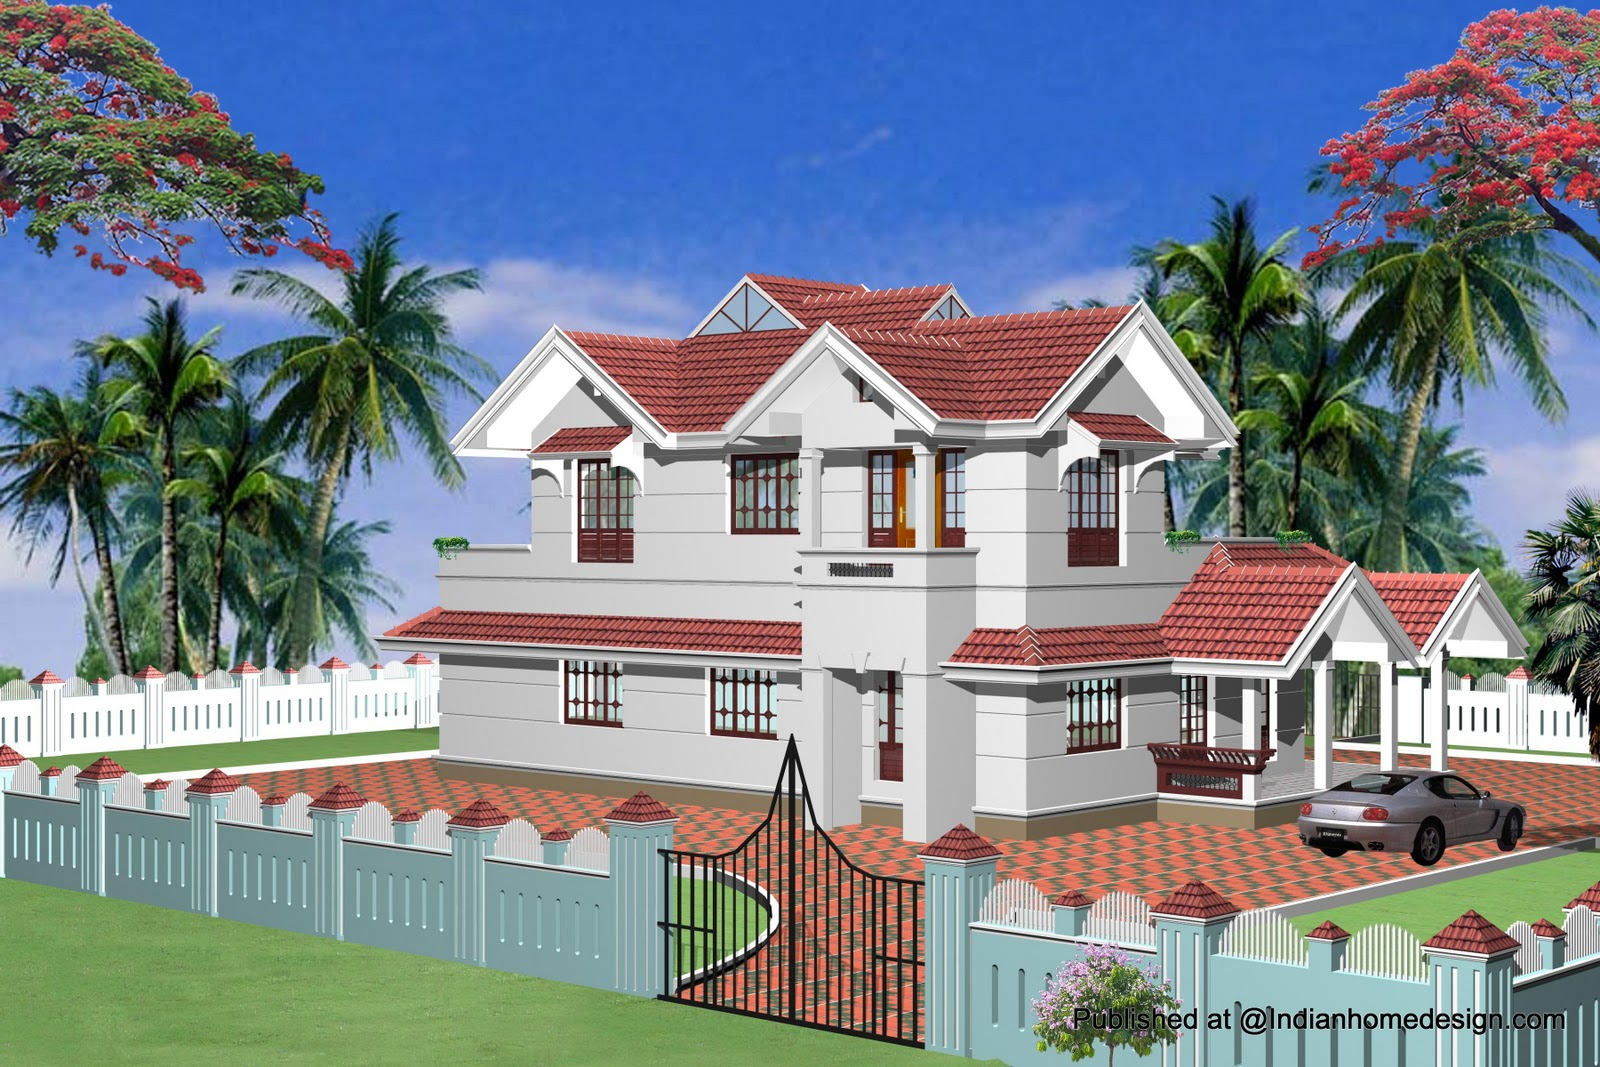 Architectural house plans india omahdesigns net for Home design exterior ideas in india